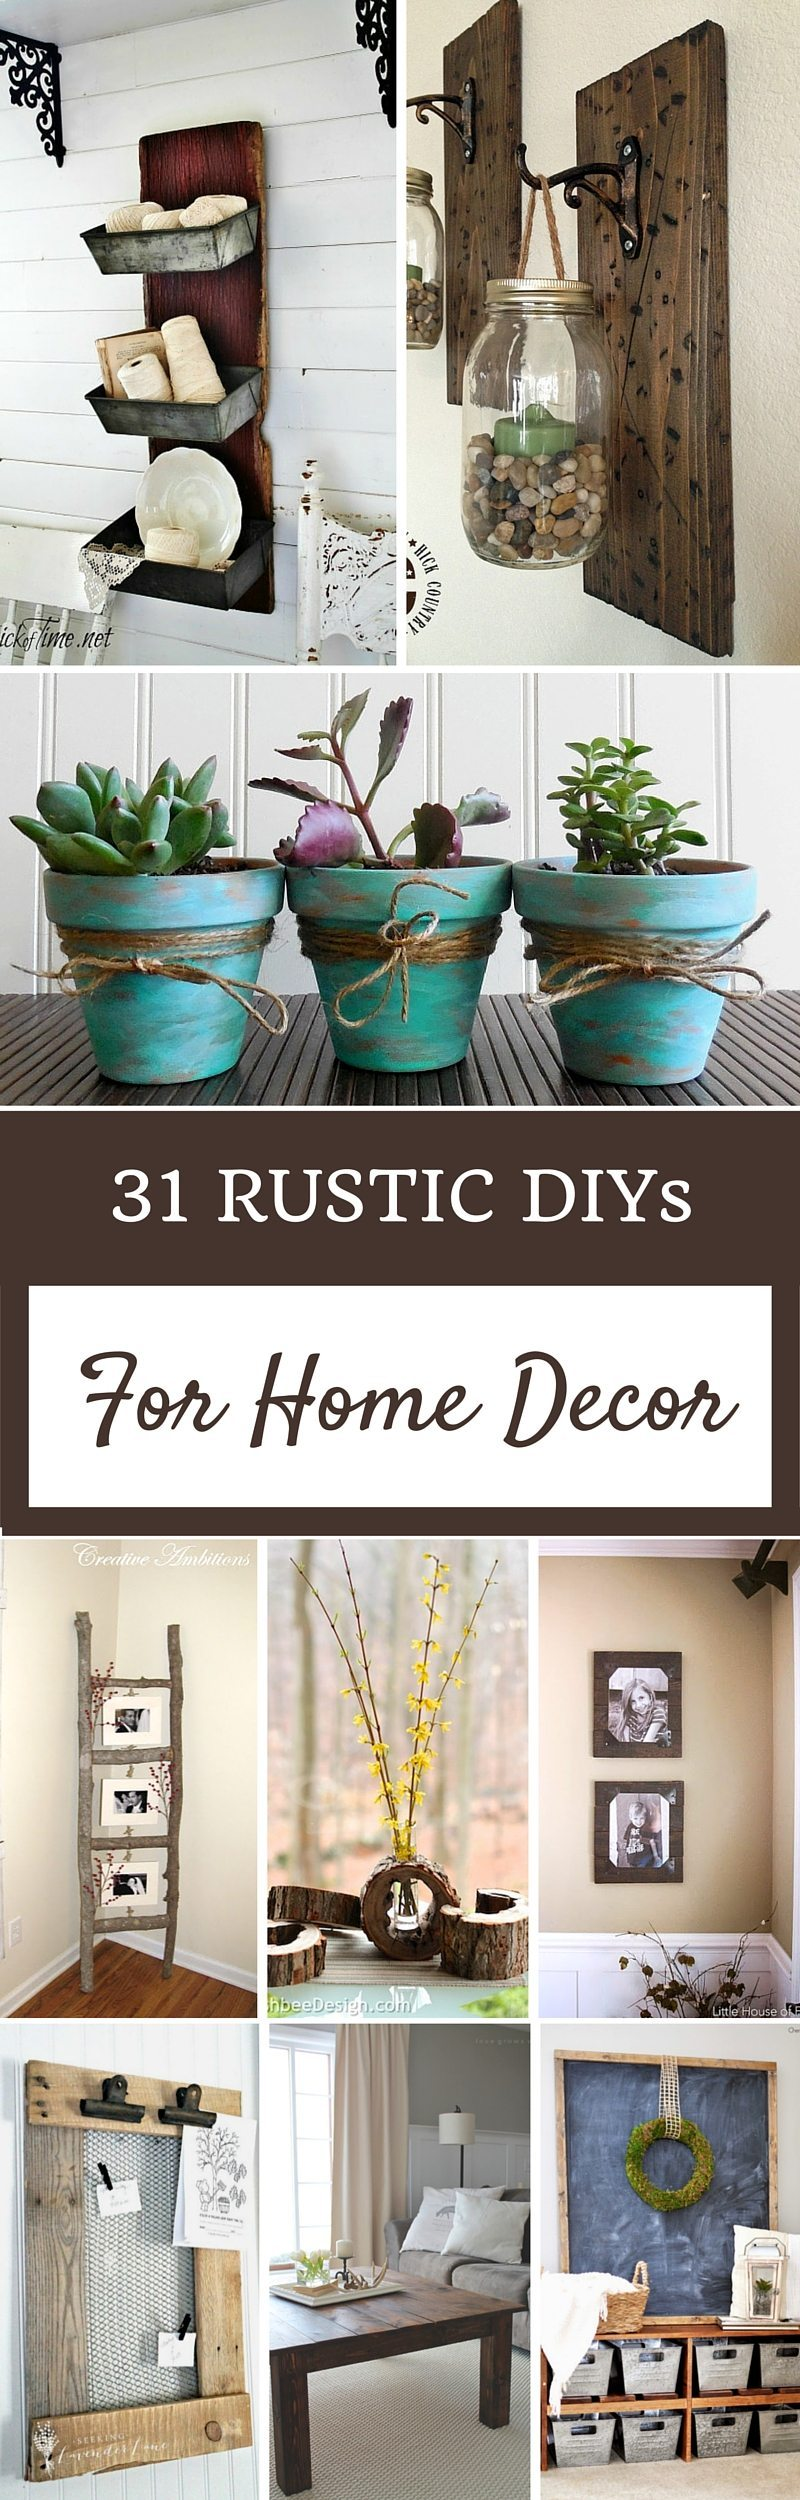 Charming Home Decor Rustic Diy Home Decor Projects Refresh Restyle Diy Home Decor Crafts Diy Home Decor Craft Projects Rustic Diys home decor Diy Home Decor Crafts